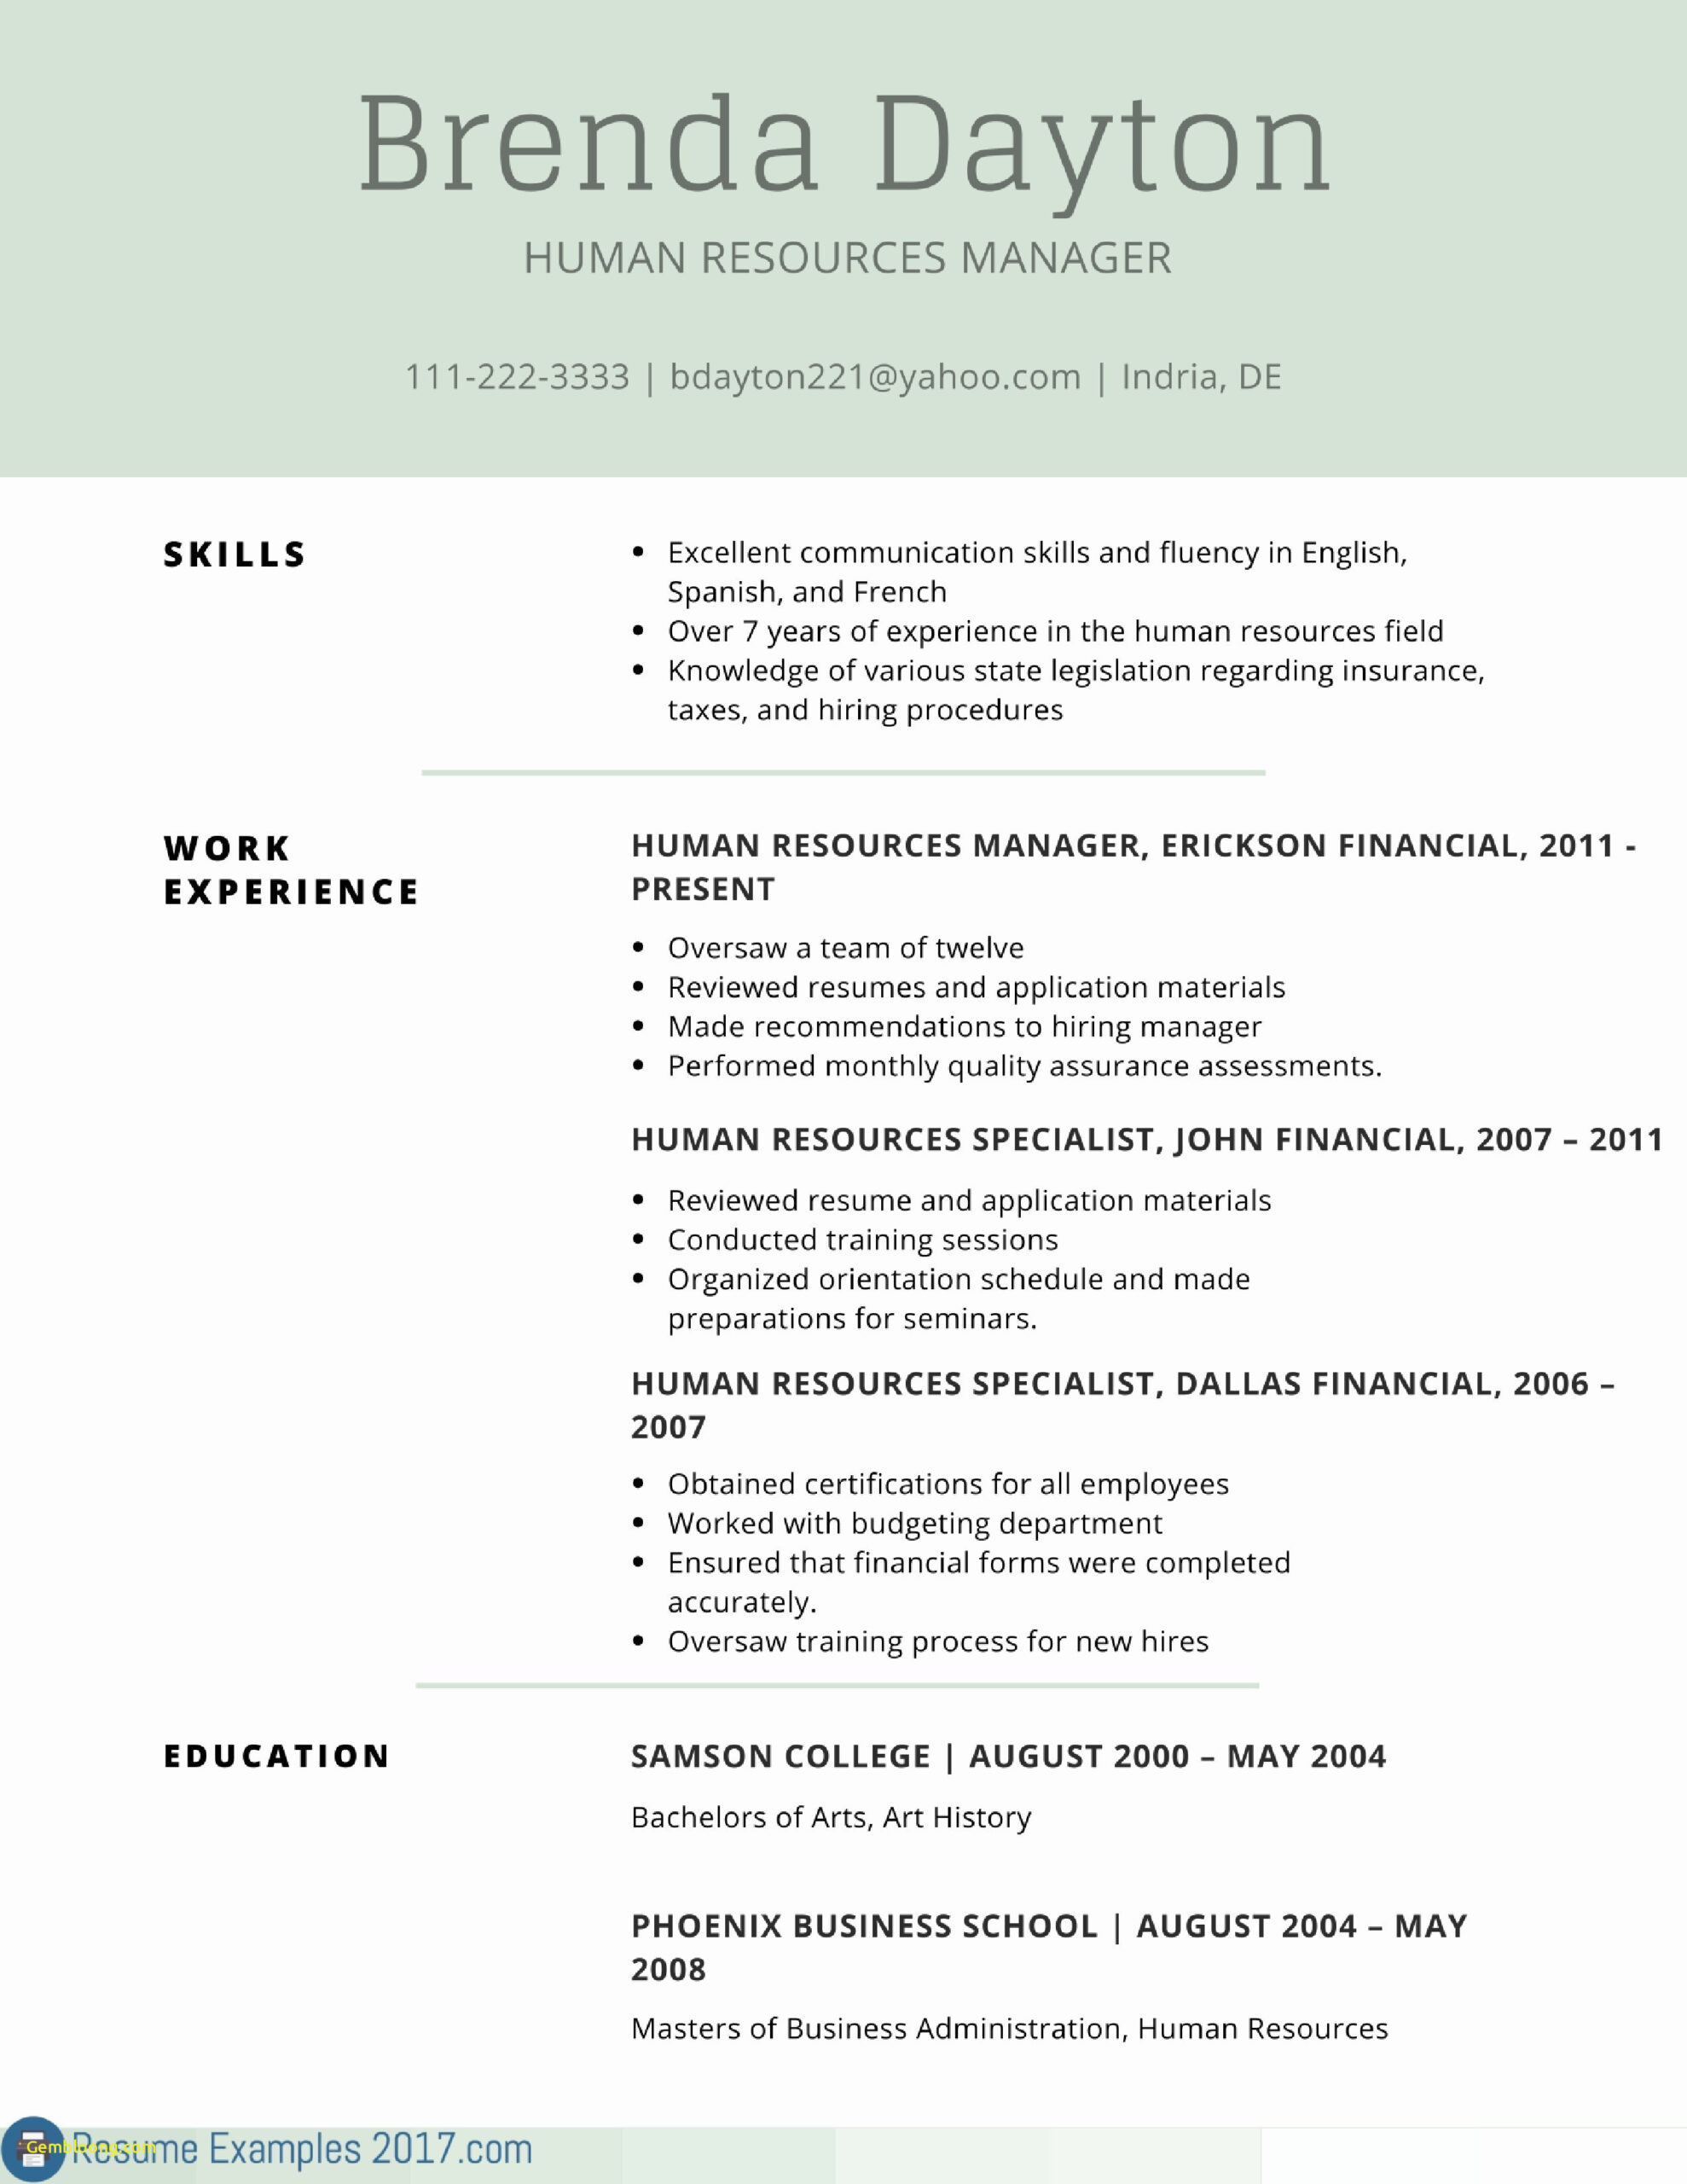 ken resume example best examples perfect reviews template equestrian sample career Resume Perfect Resume Dallas Reviews